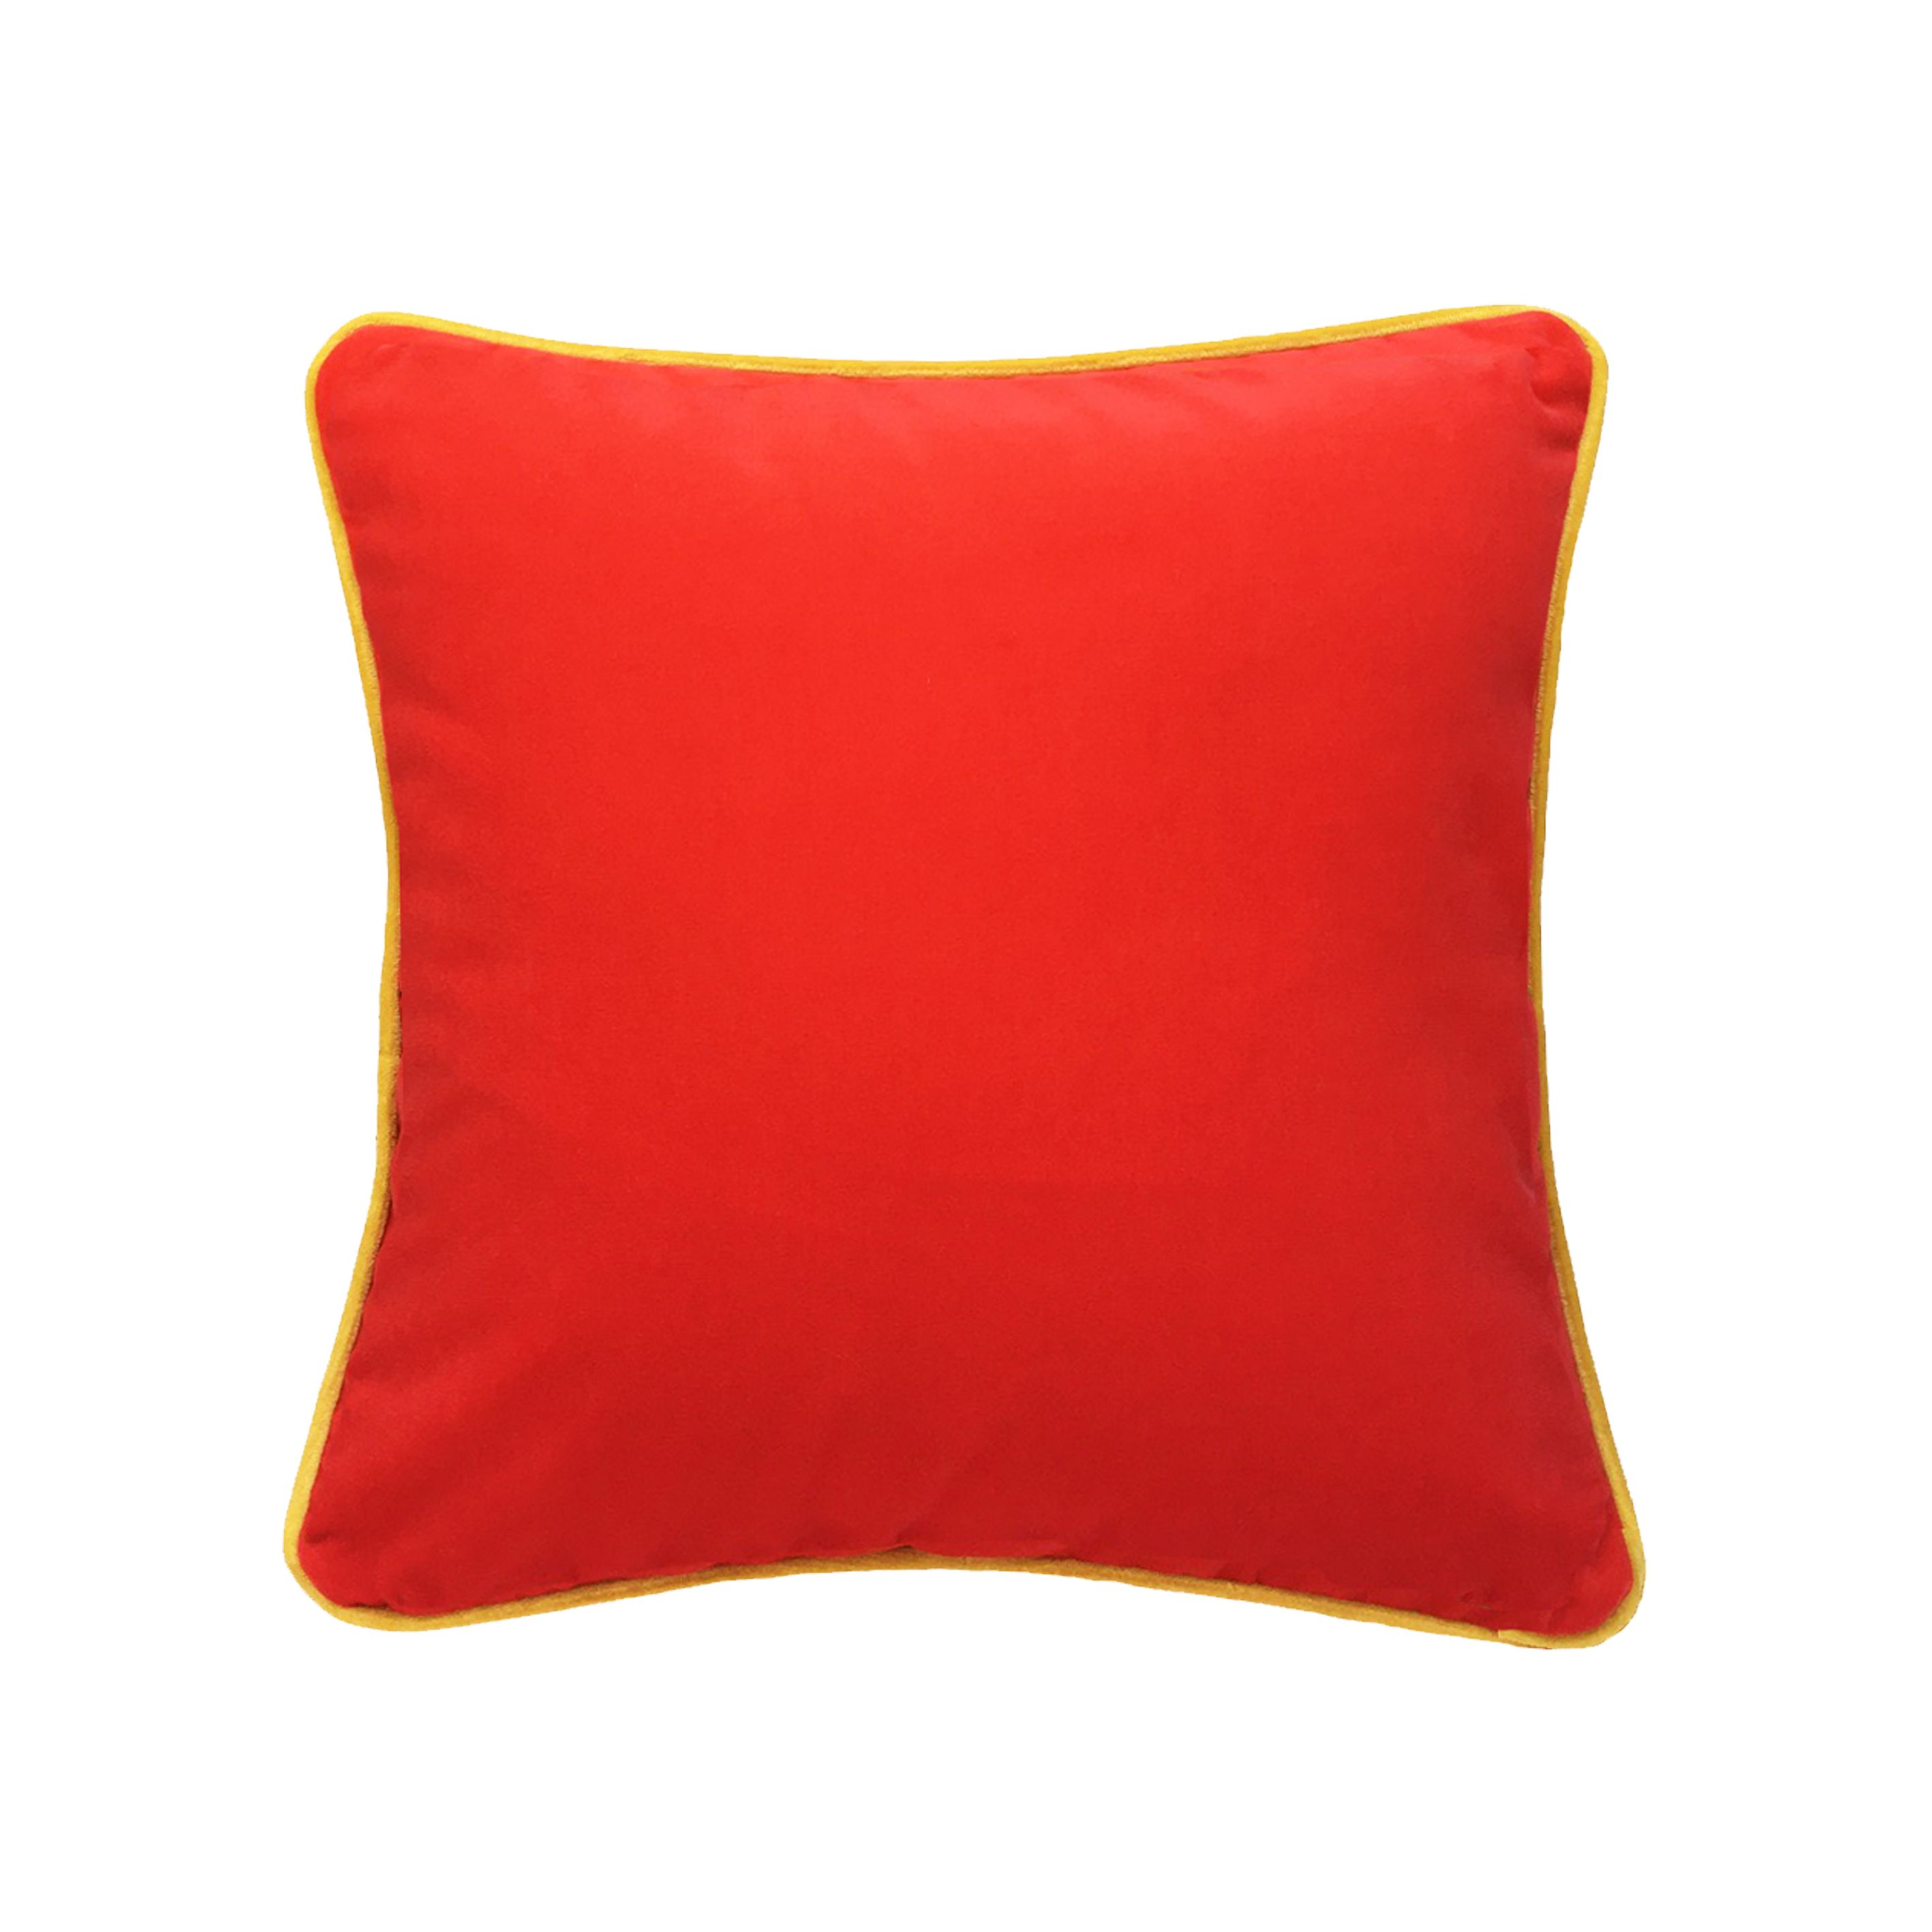 Coquelicot Coussin Velours Rouge 40x40 Coussin Velours Canape